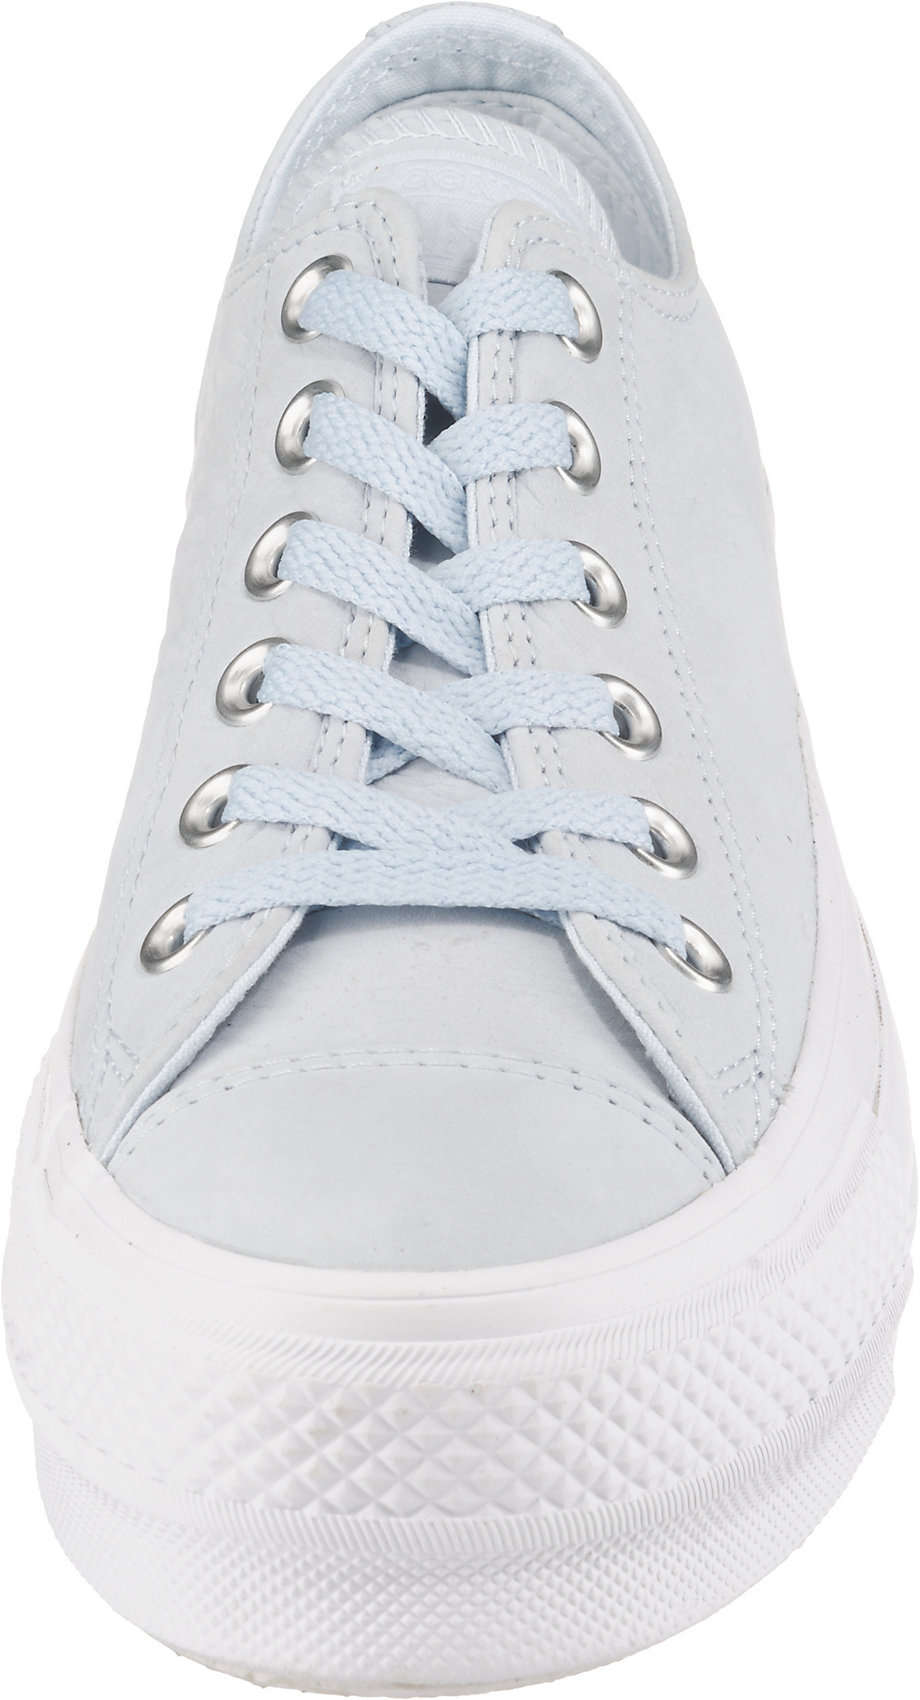 Neu CONVERSE Chuck Taylor All Star Clean Lift Sneakers Low